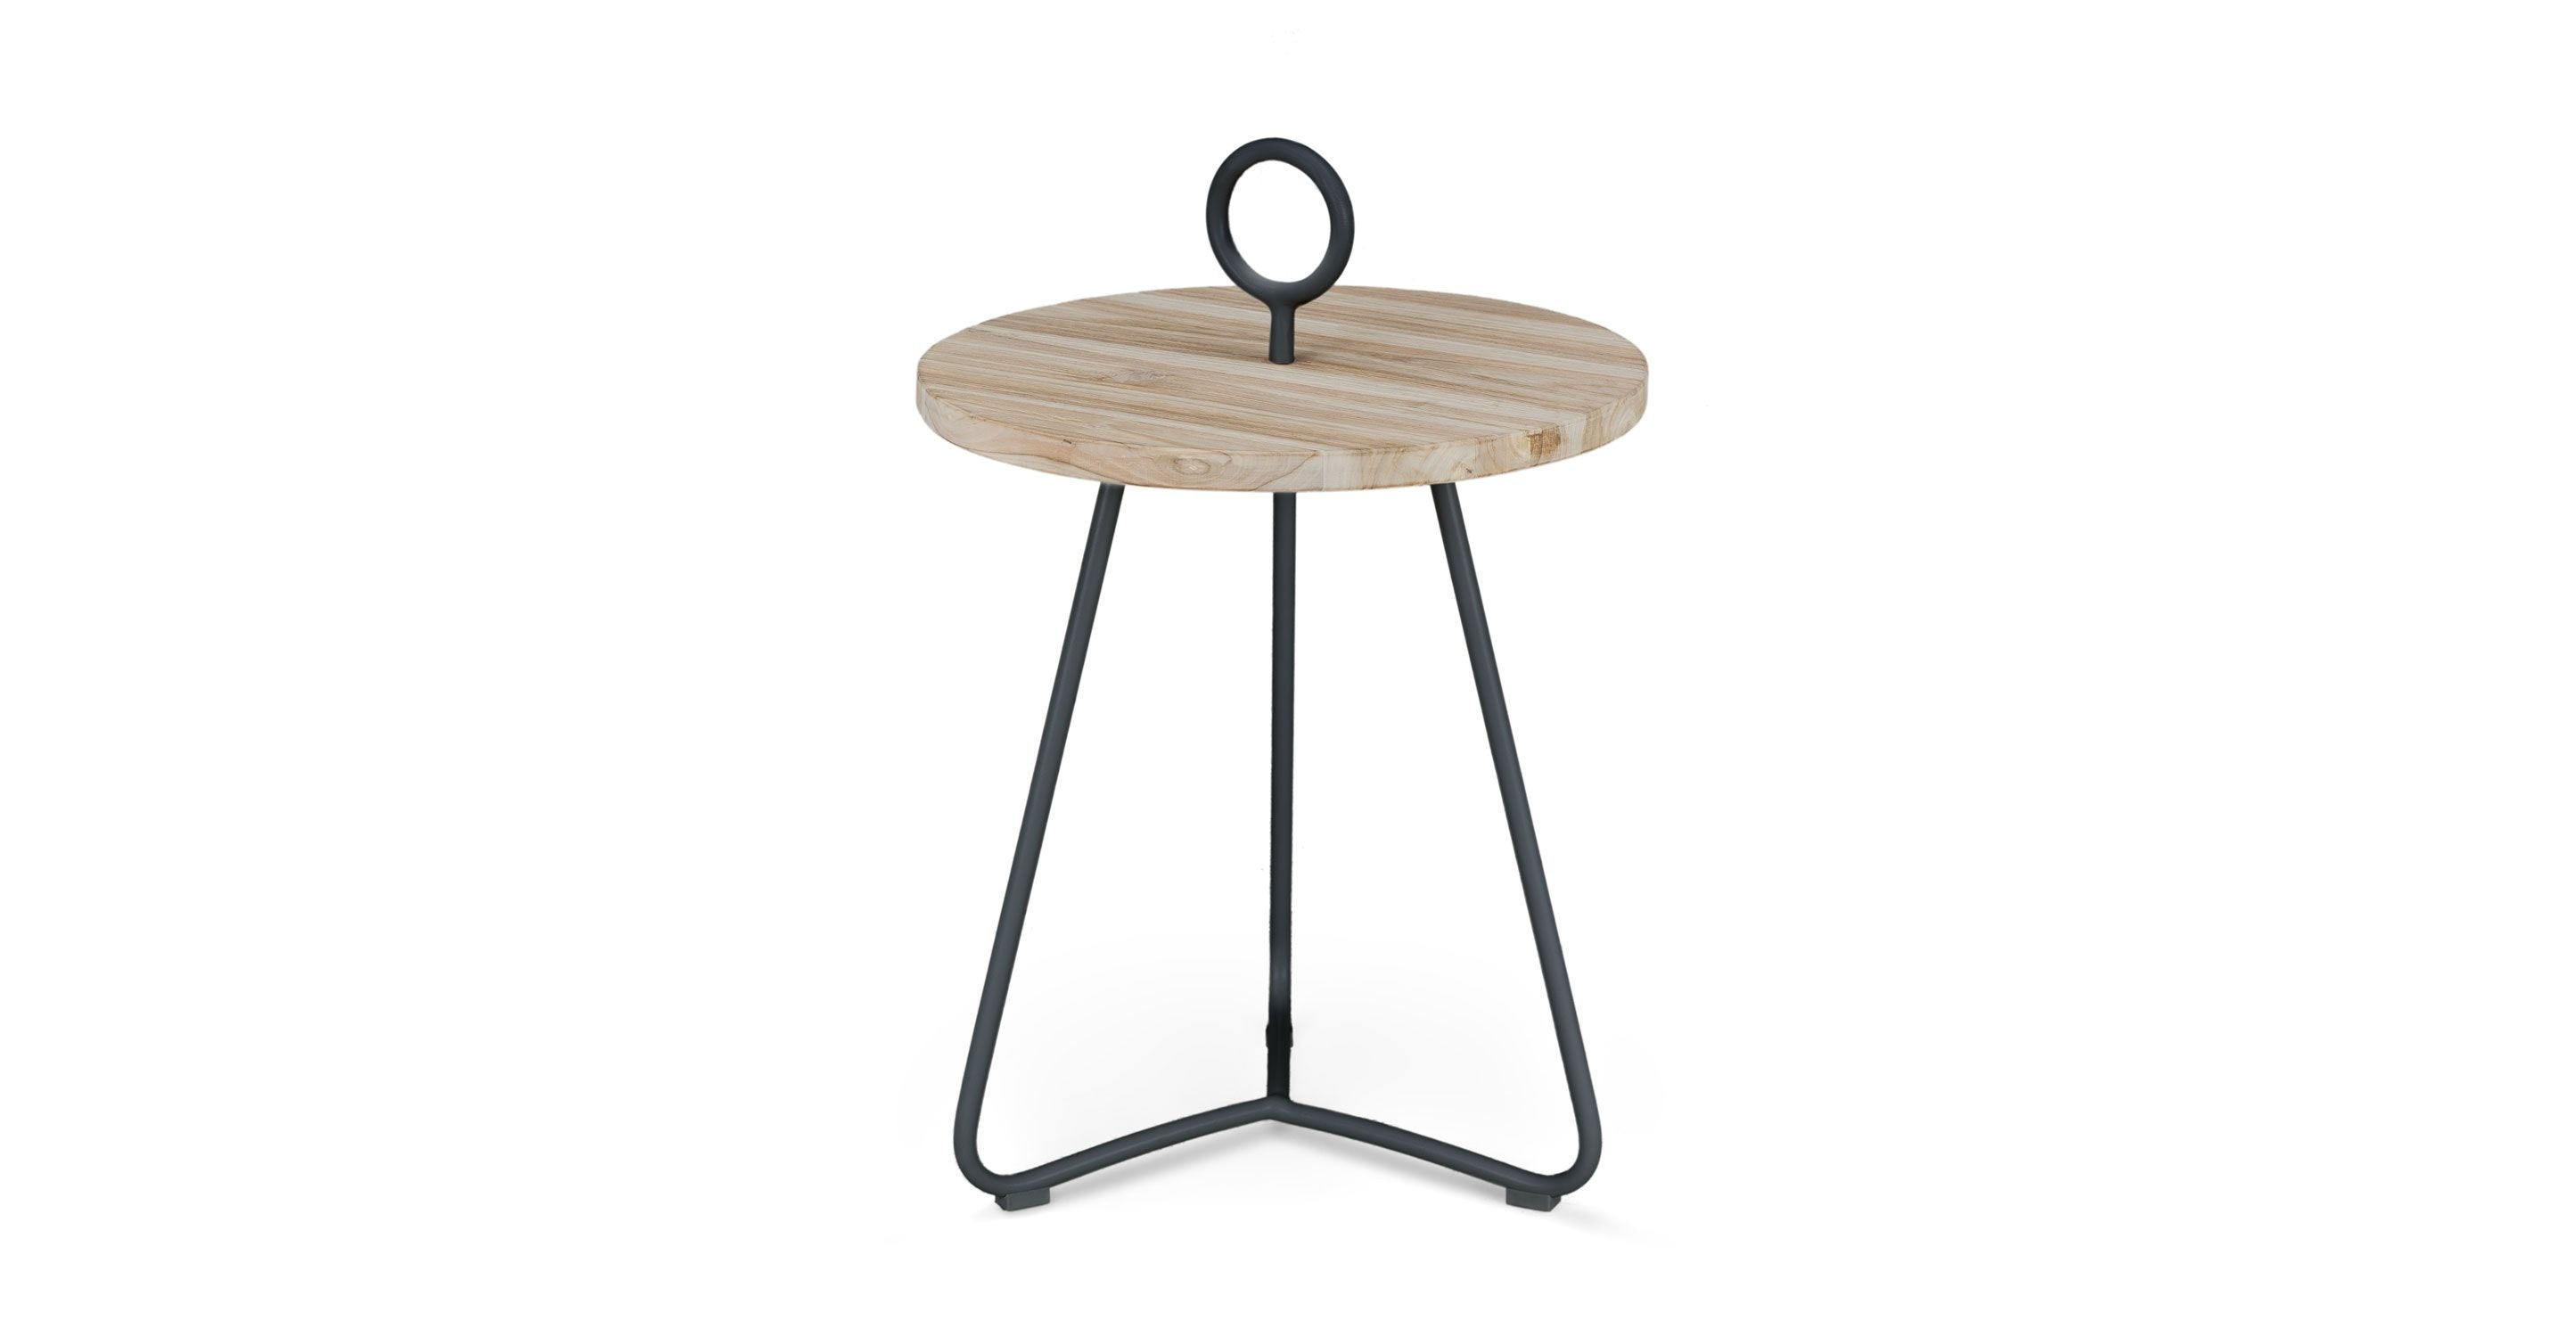 graphite side table mini masculine mid mod munson project teak outdoor accent you can easily bring this inside thanks its playful looped handle round cherry wood end tables space